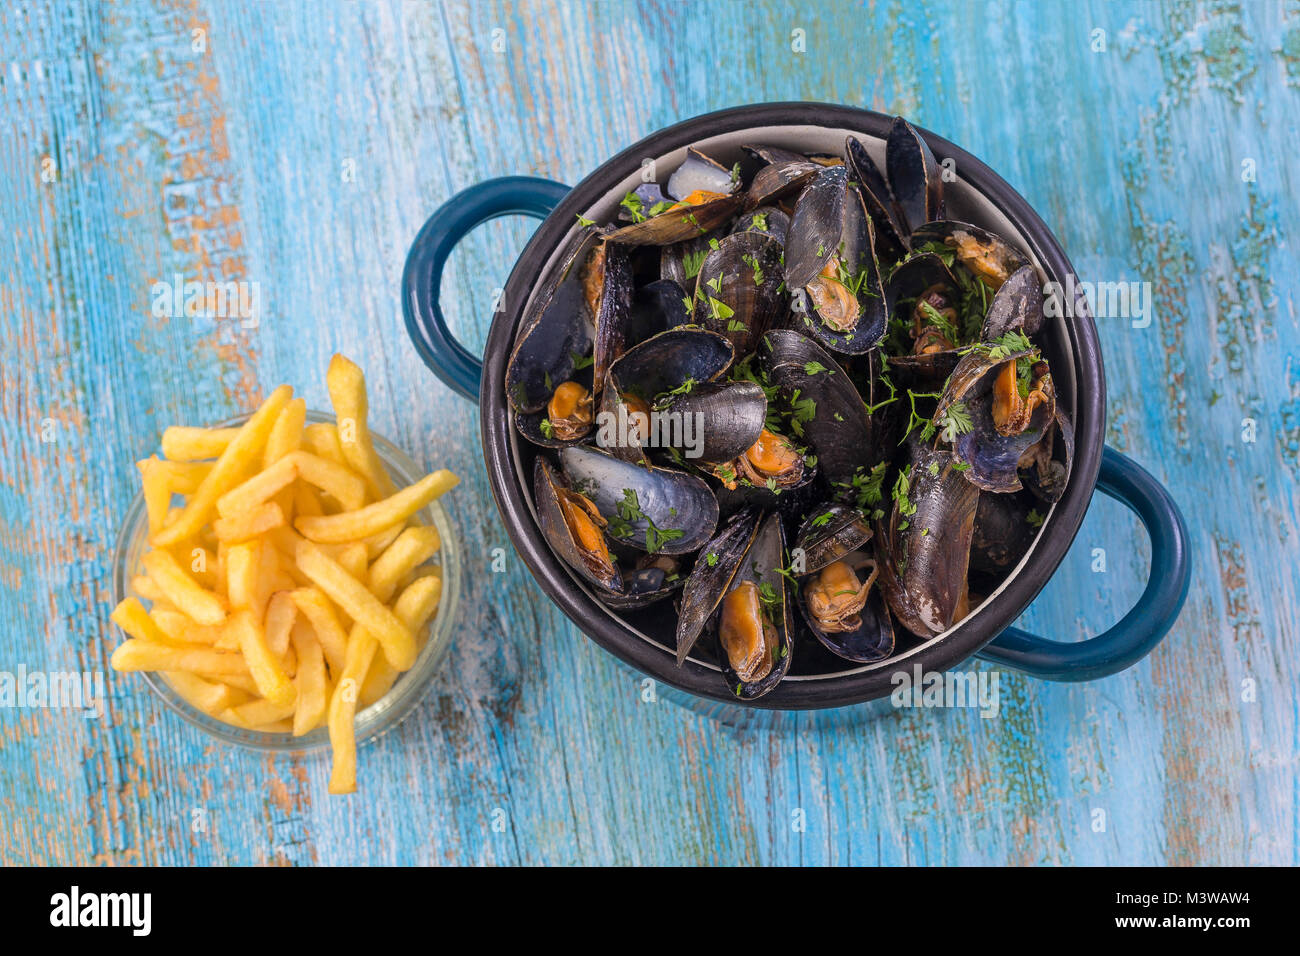 mussels in a blue ceramic pot on a blue wooden background. with a glass bowl of french fries. Meditteranean lifestyle. - Stock Image